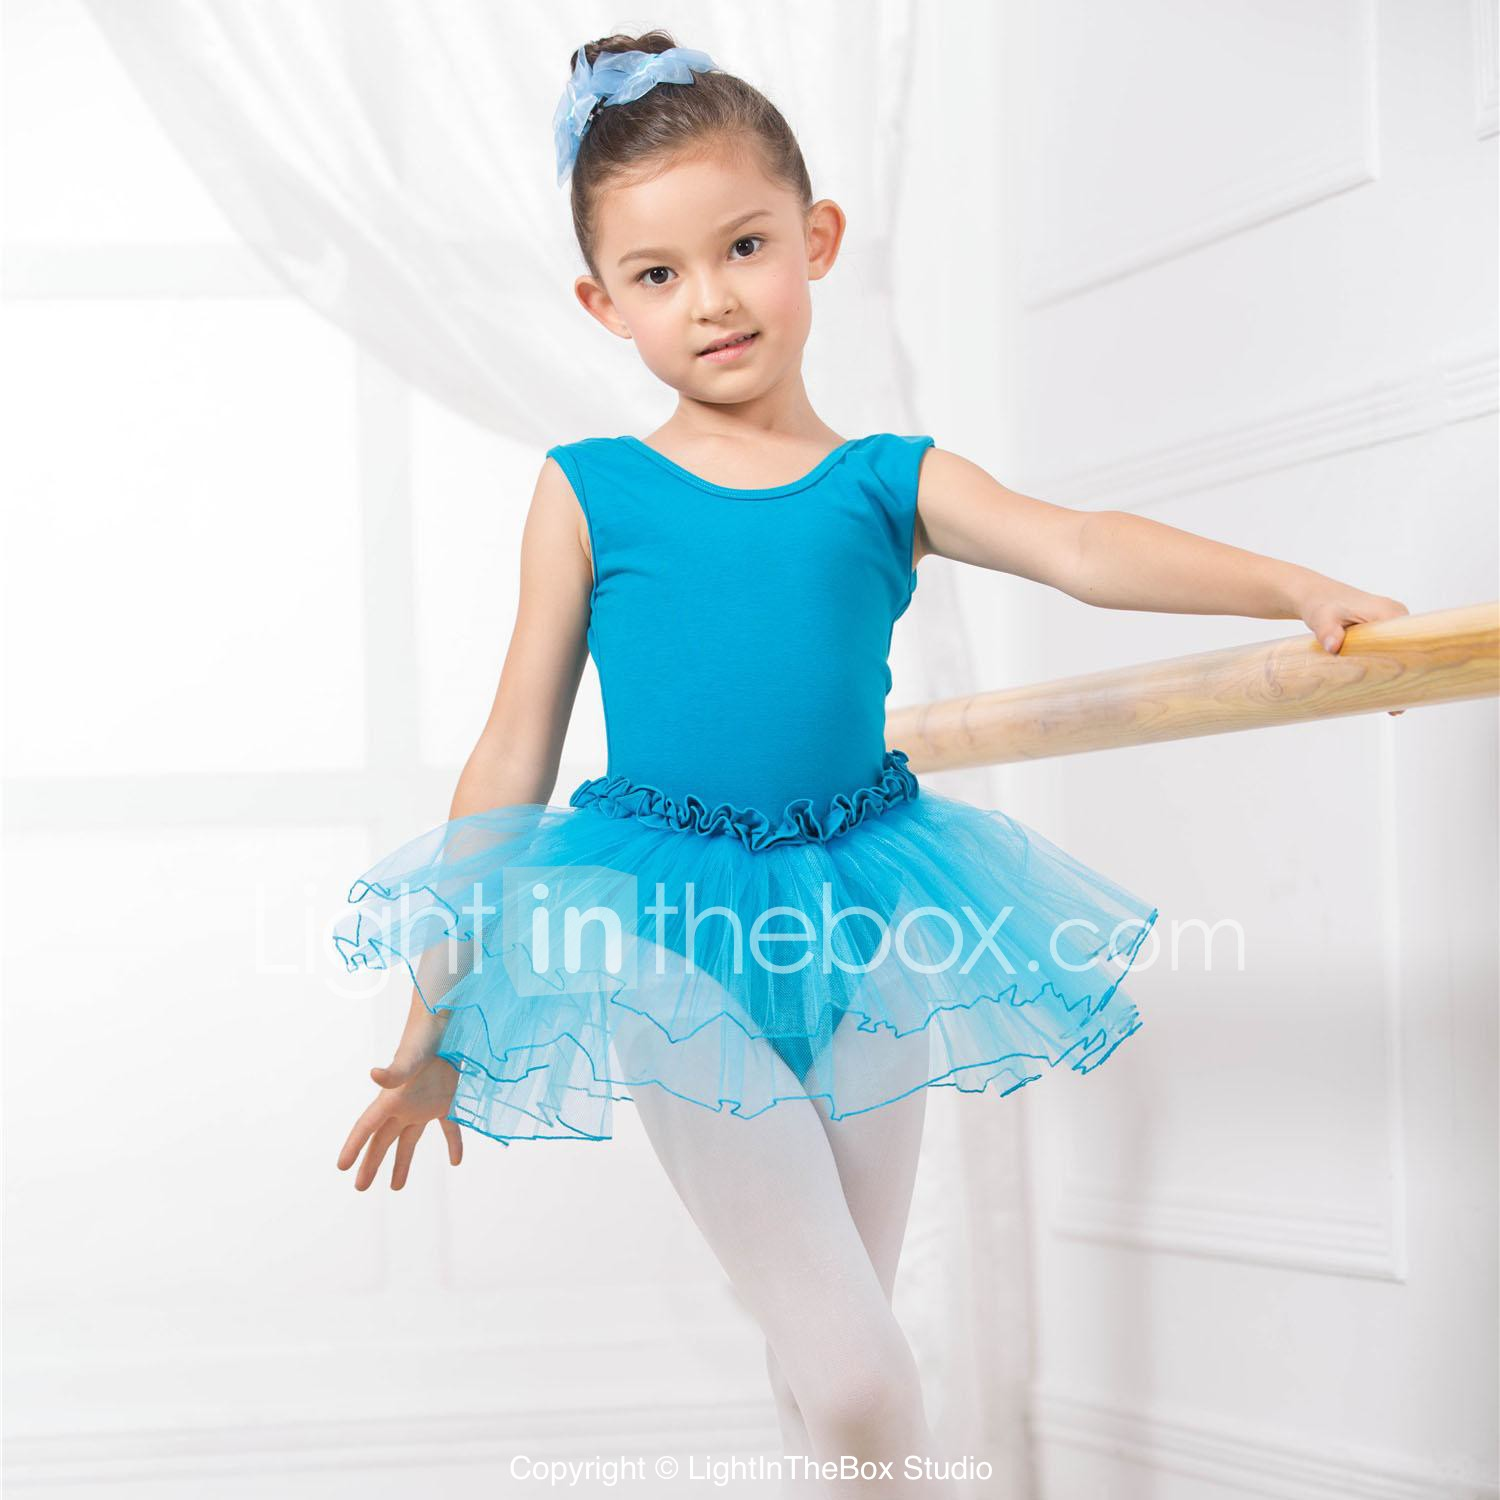 DANCE Come una bambina-Kids Bambini RUBINETTO T-Shirt danza Dancer balletto